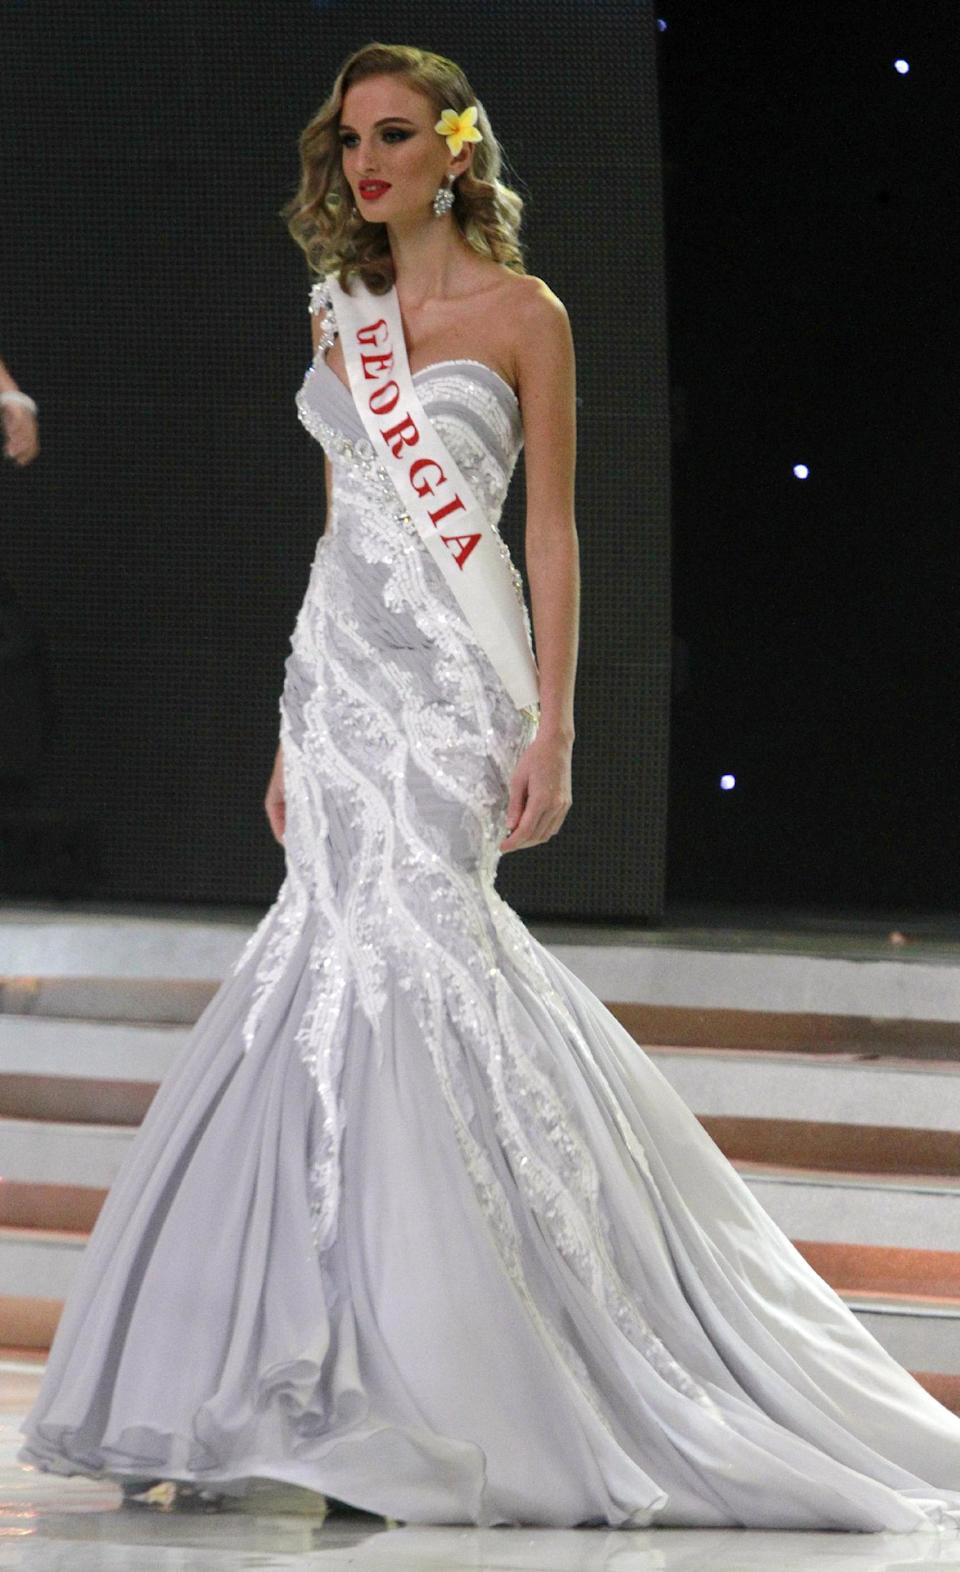 Miss Georgia Tamar Shedaniai walks on stage during opening of the 63rd Miss World Pageant ceremony in Nusa Dua, Bali, Indonesia on Sunday, Sept. 8, 2013. (AP Photo/Firdia Lisnawati)